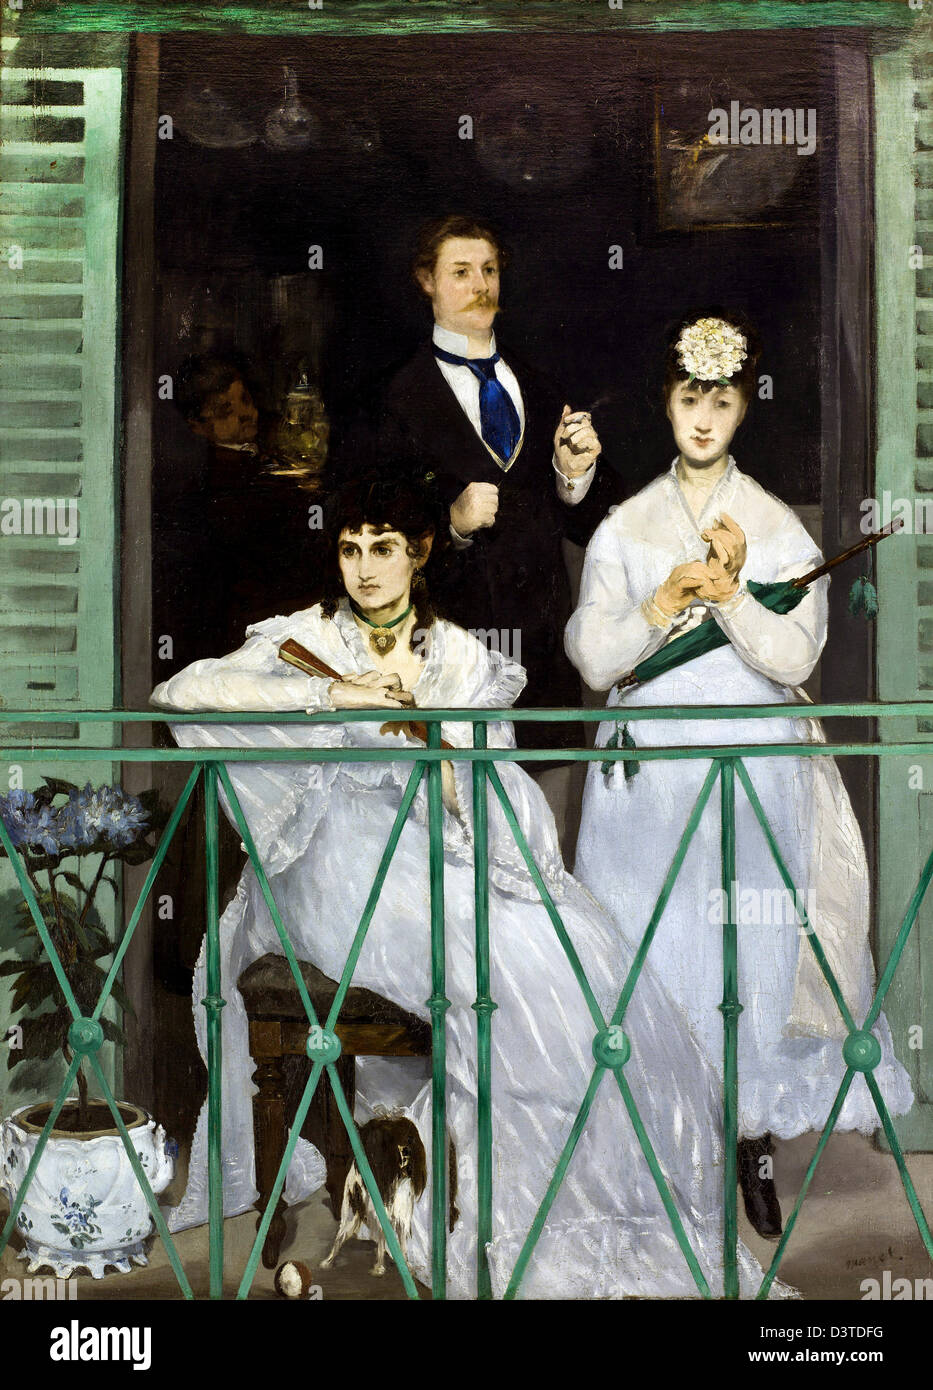 Edouard Manet, The Balcony 1869 Oil on canvas. Musée d'Orsay, Paris - Stock Image